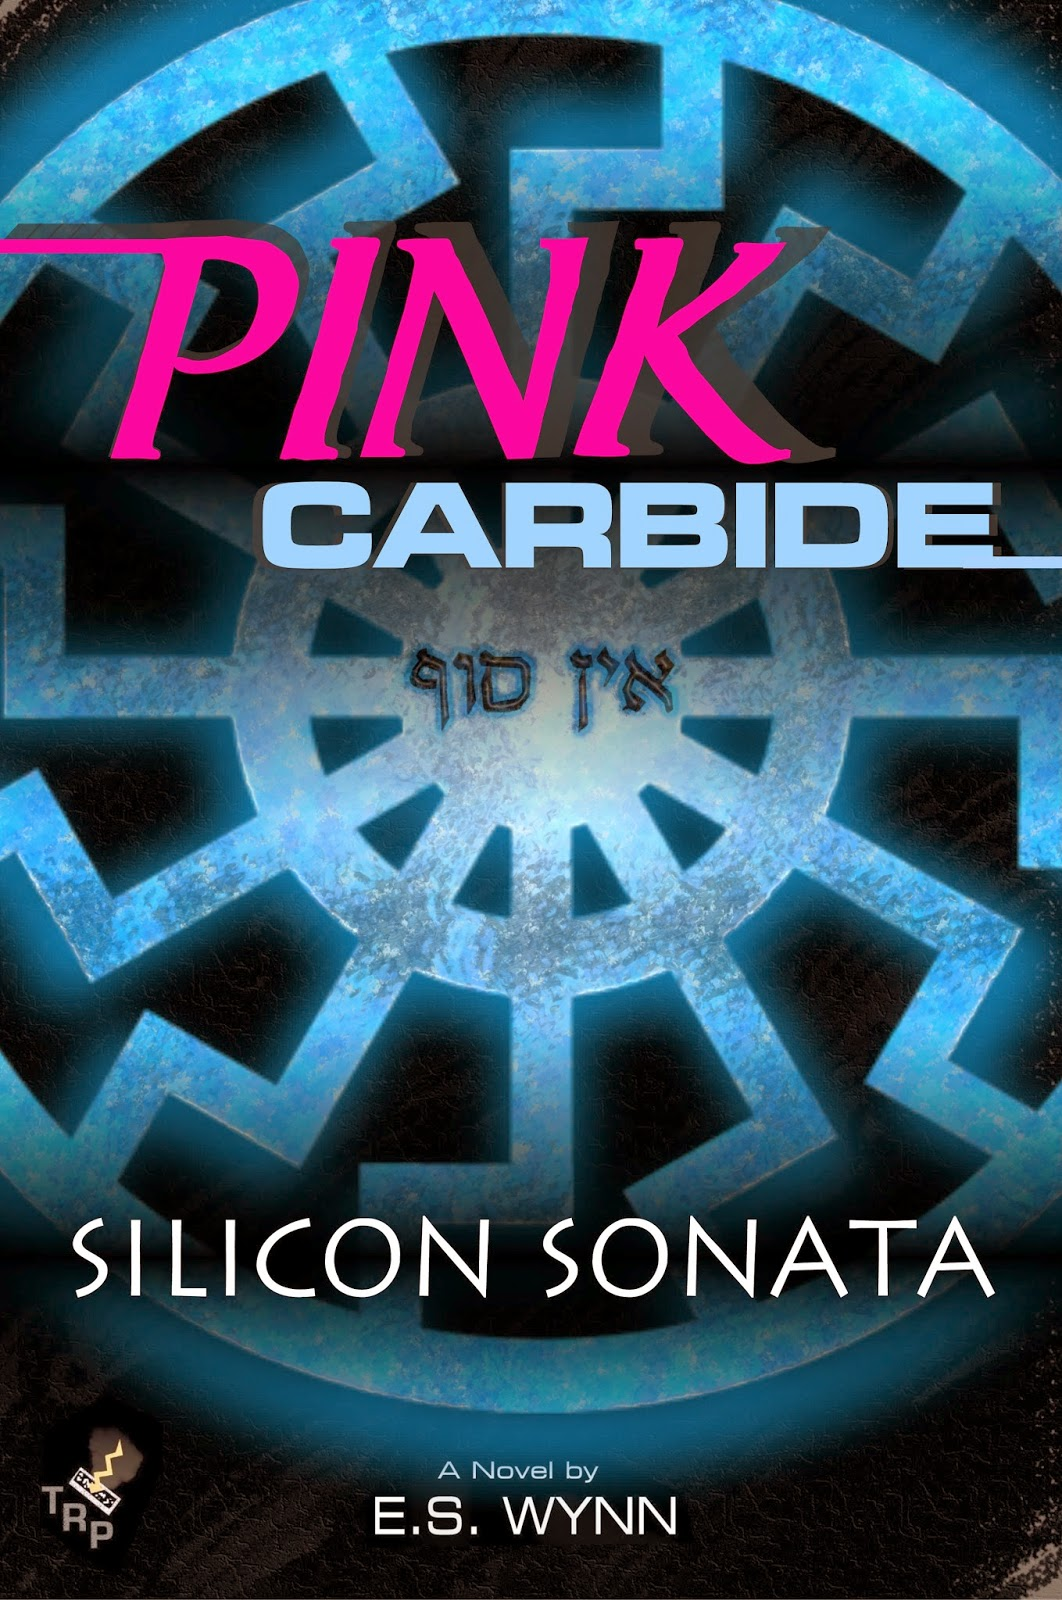 Seventh book in the Pink Carbide series